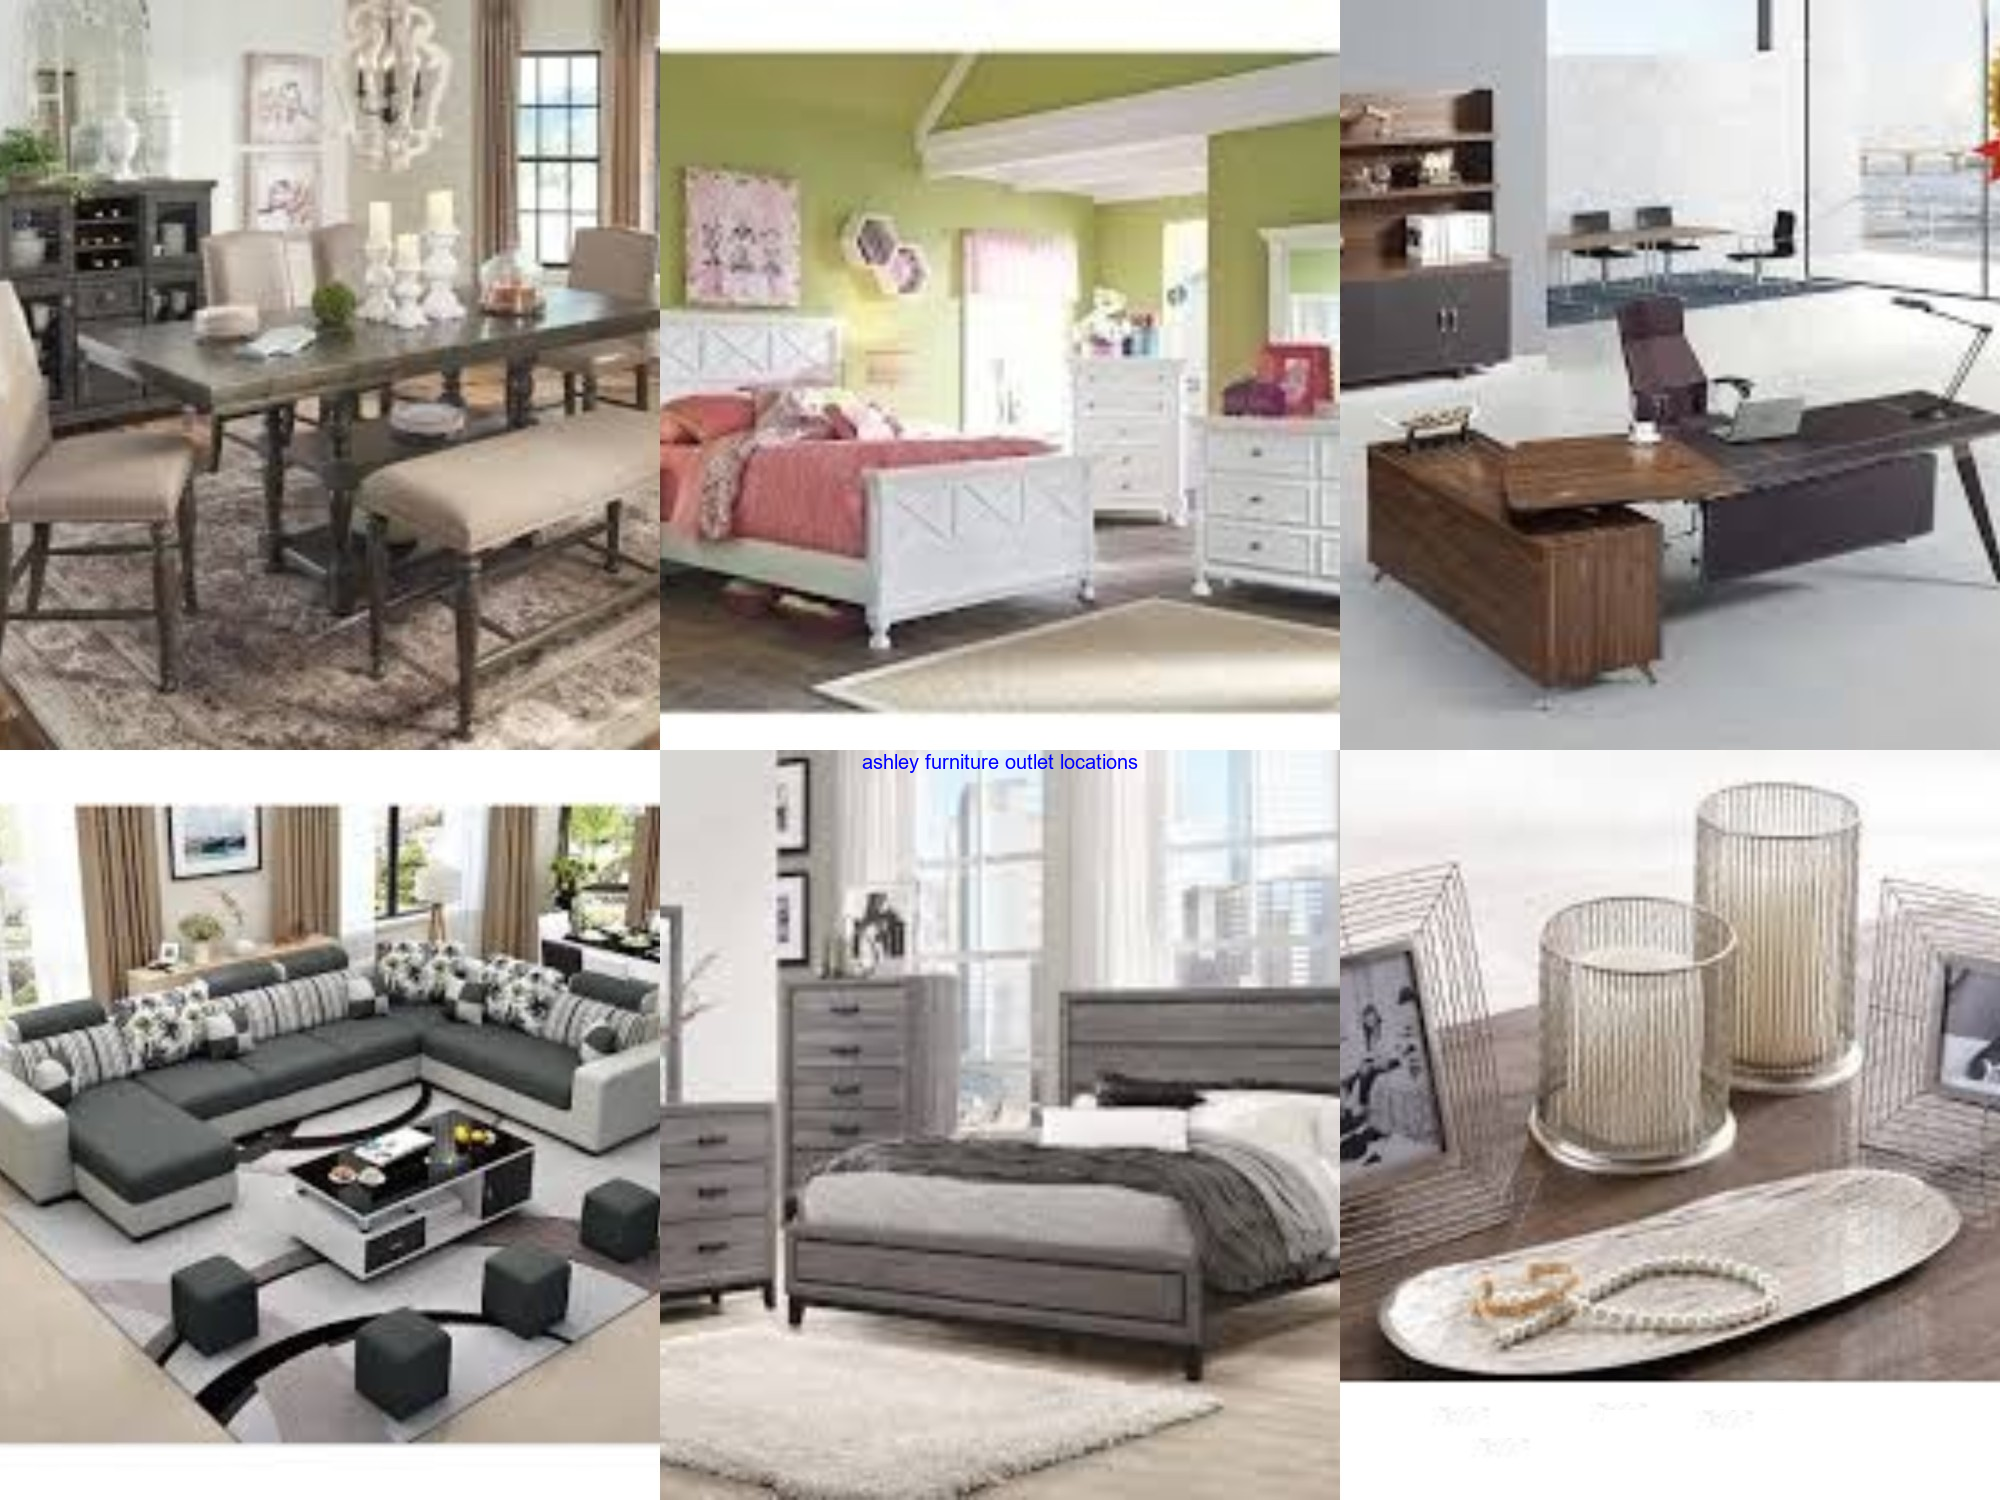 Pin Op Ashley Furniture Outlet Locations